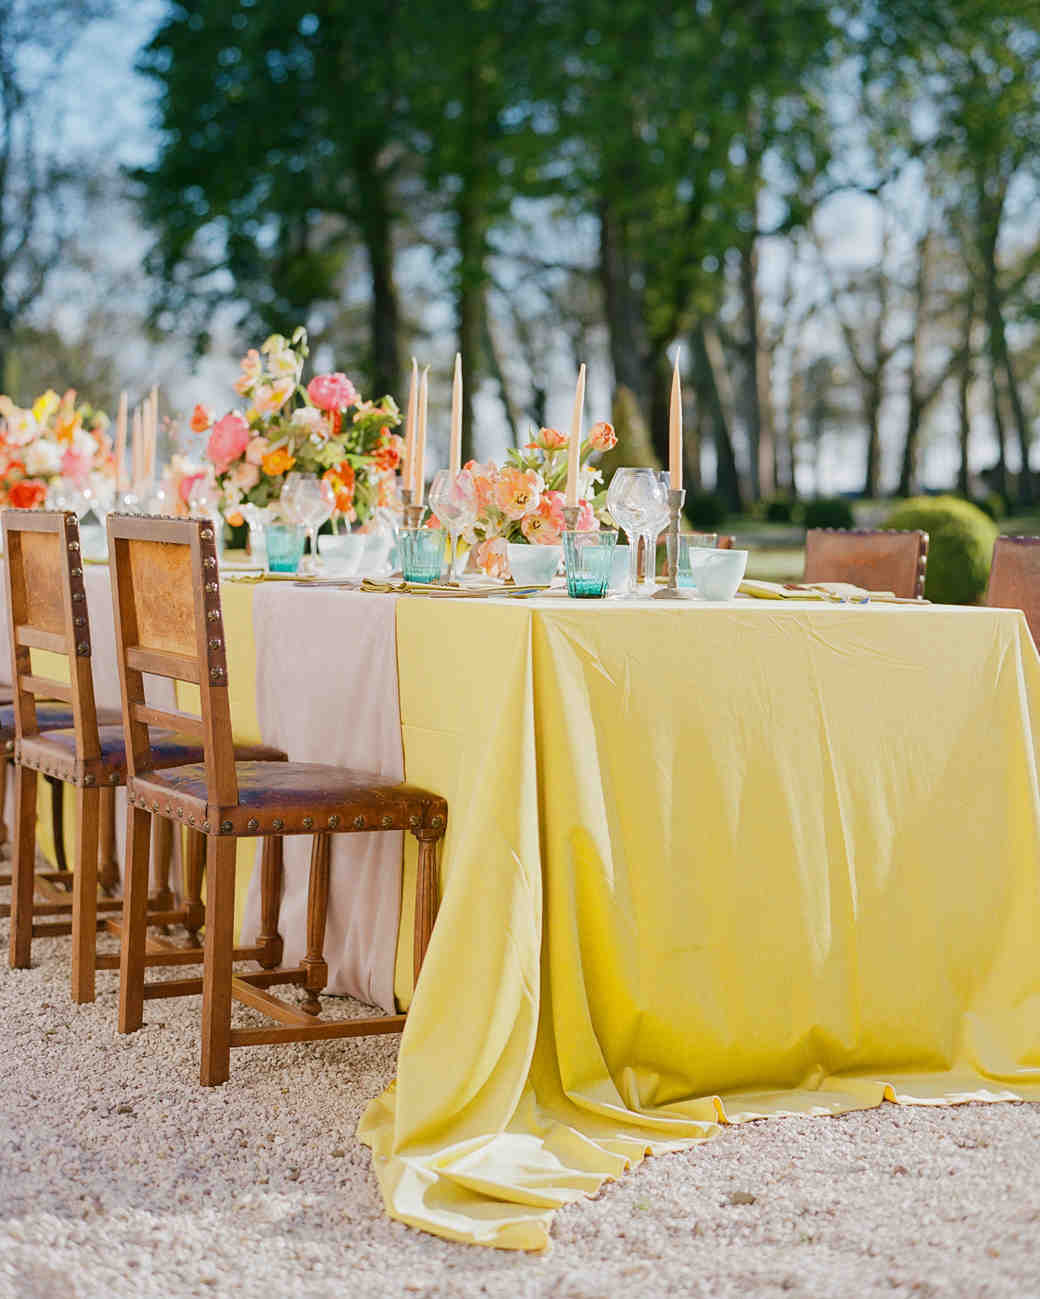 24 Yellow Wedding Ideas That Will Make Your Day Bright and Cheery ...